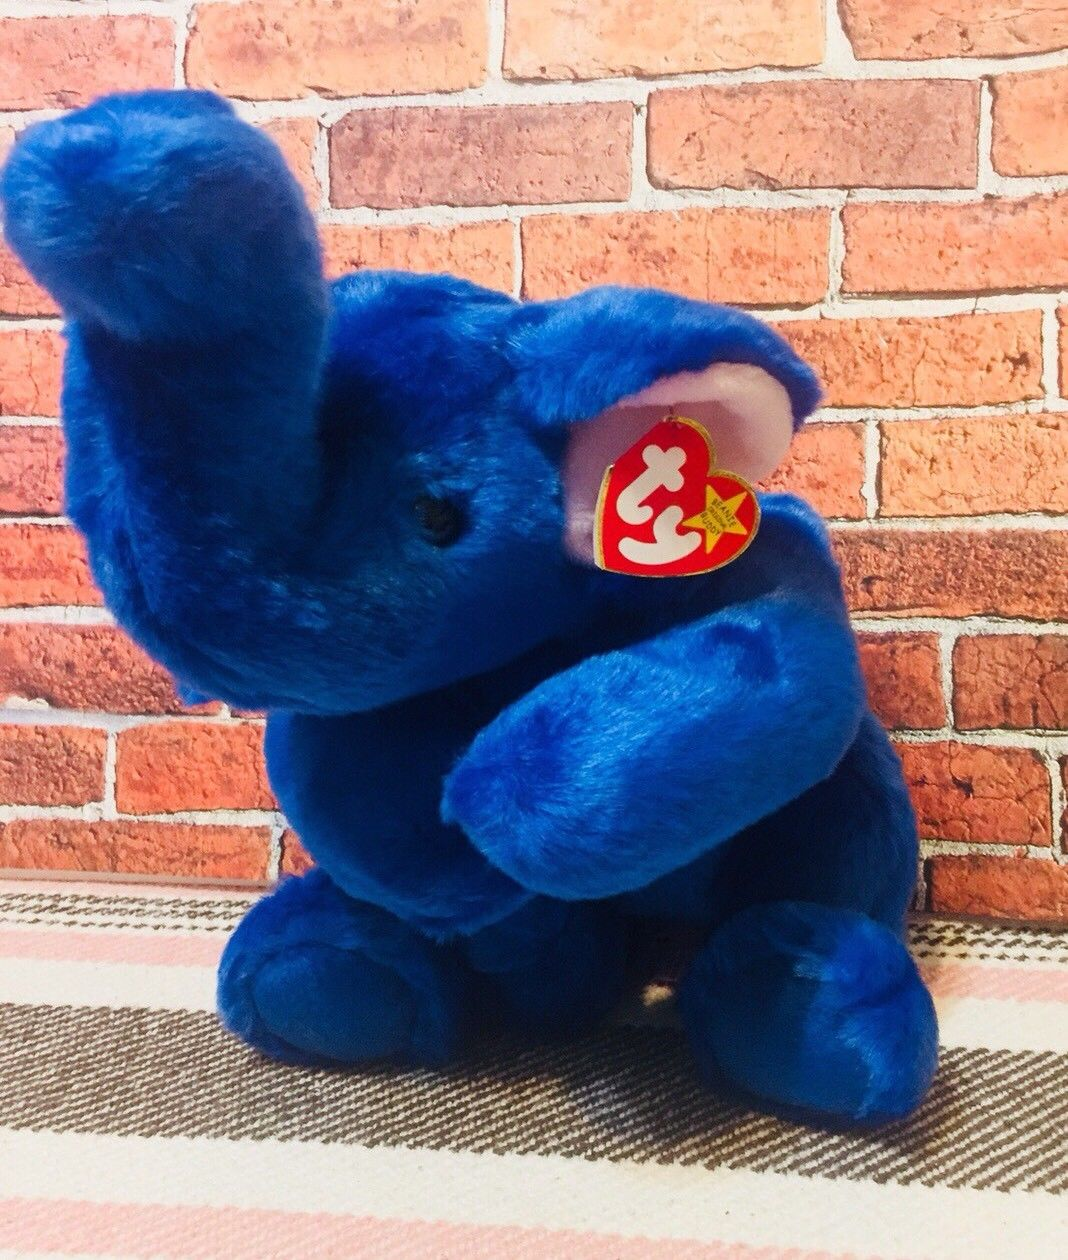 Peanut The Royal Blue Elephant Beanie Baby